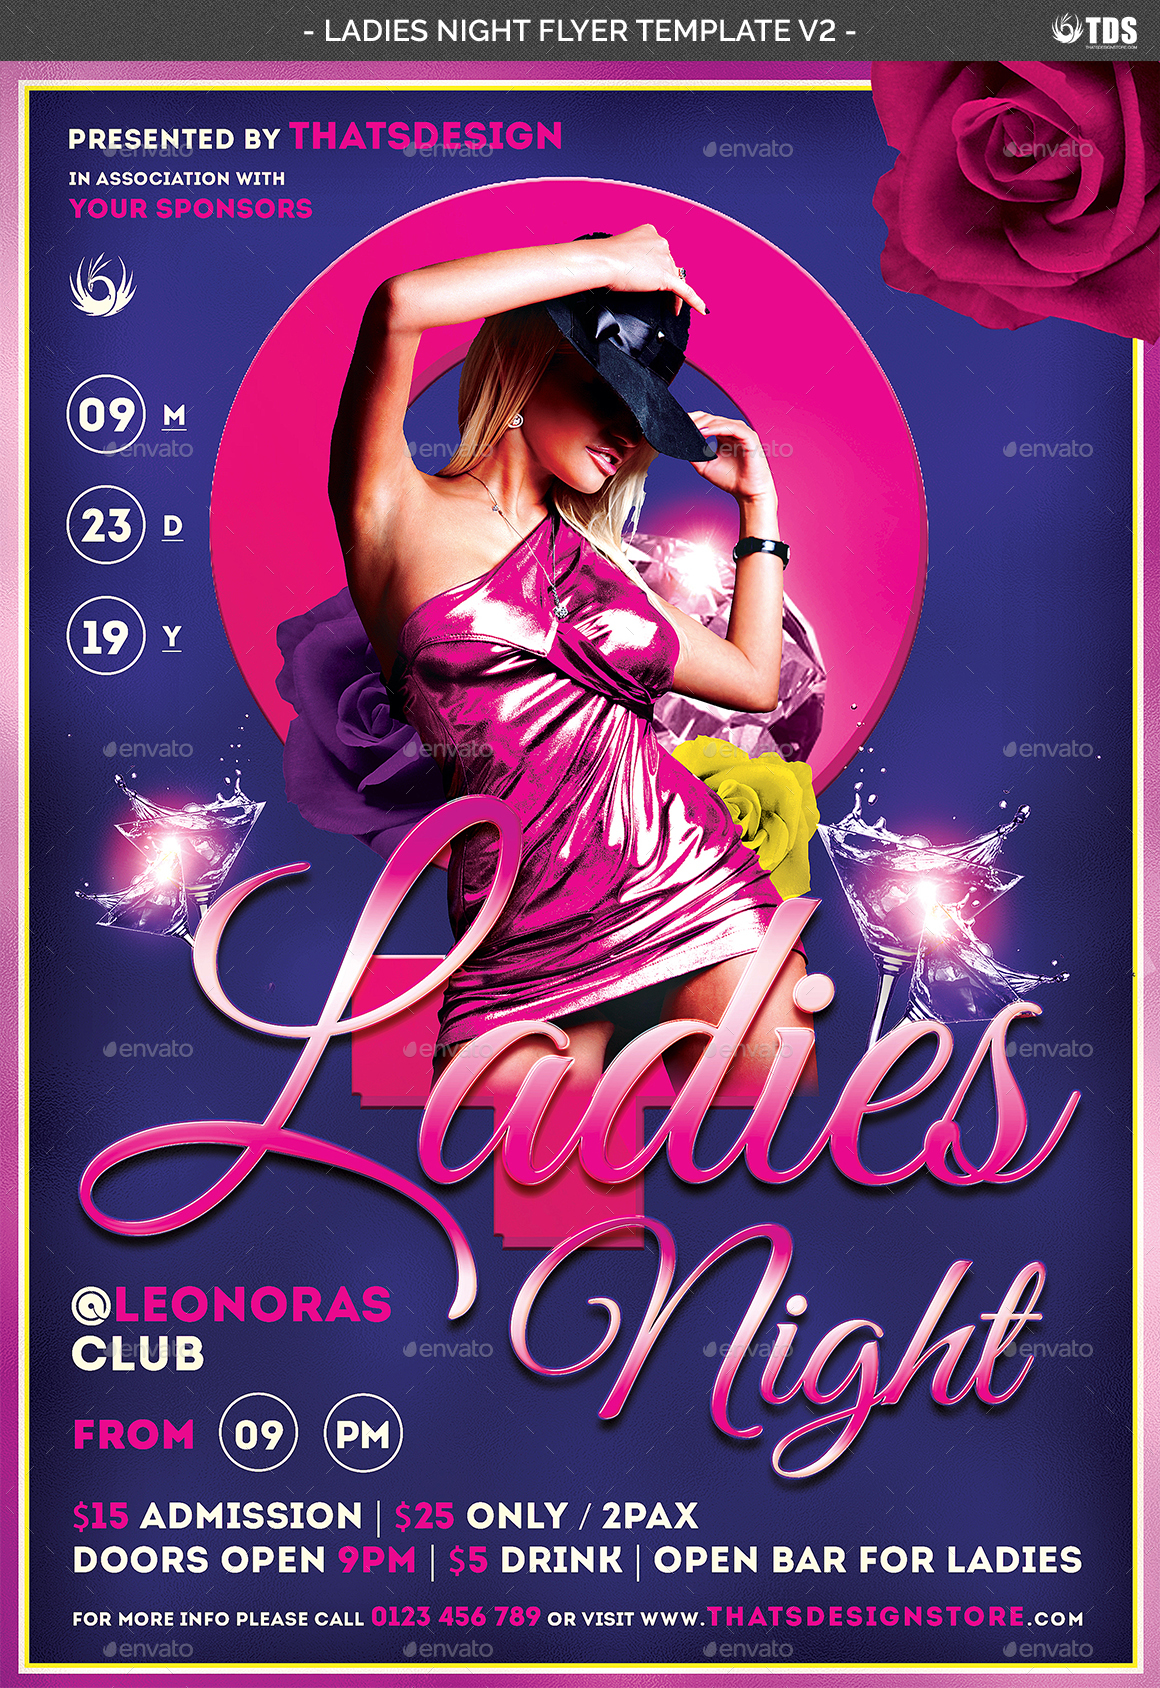 ladies night flyer template v2 by noryach